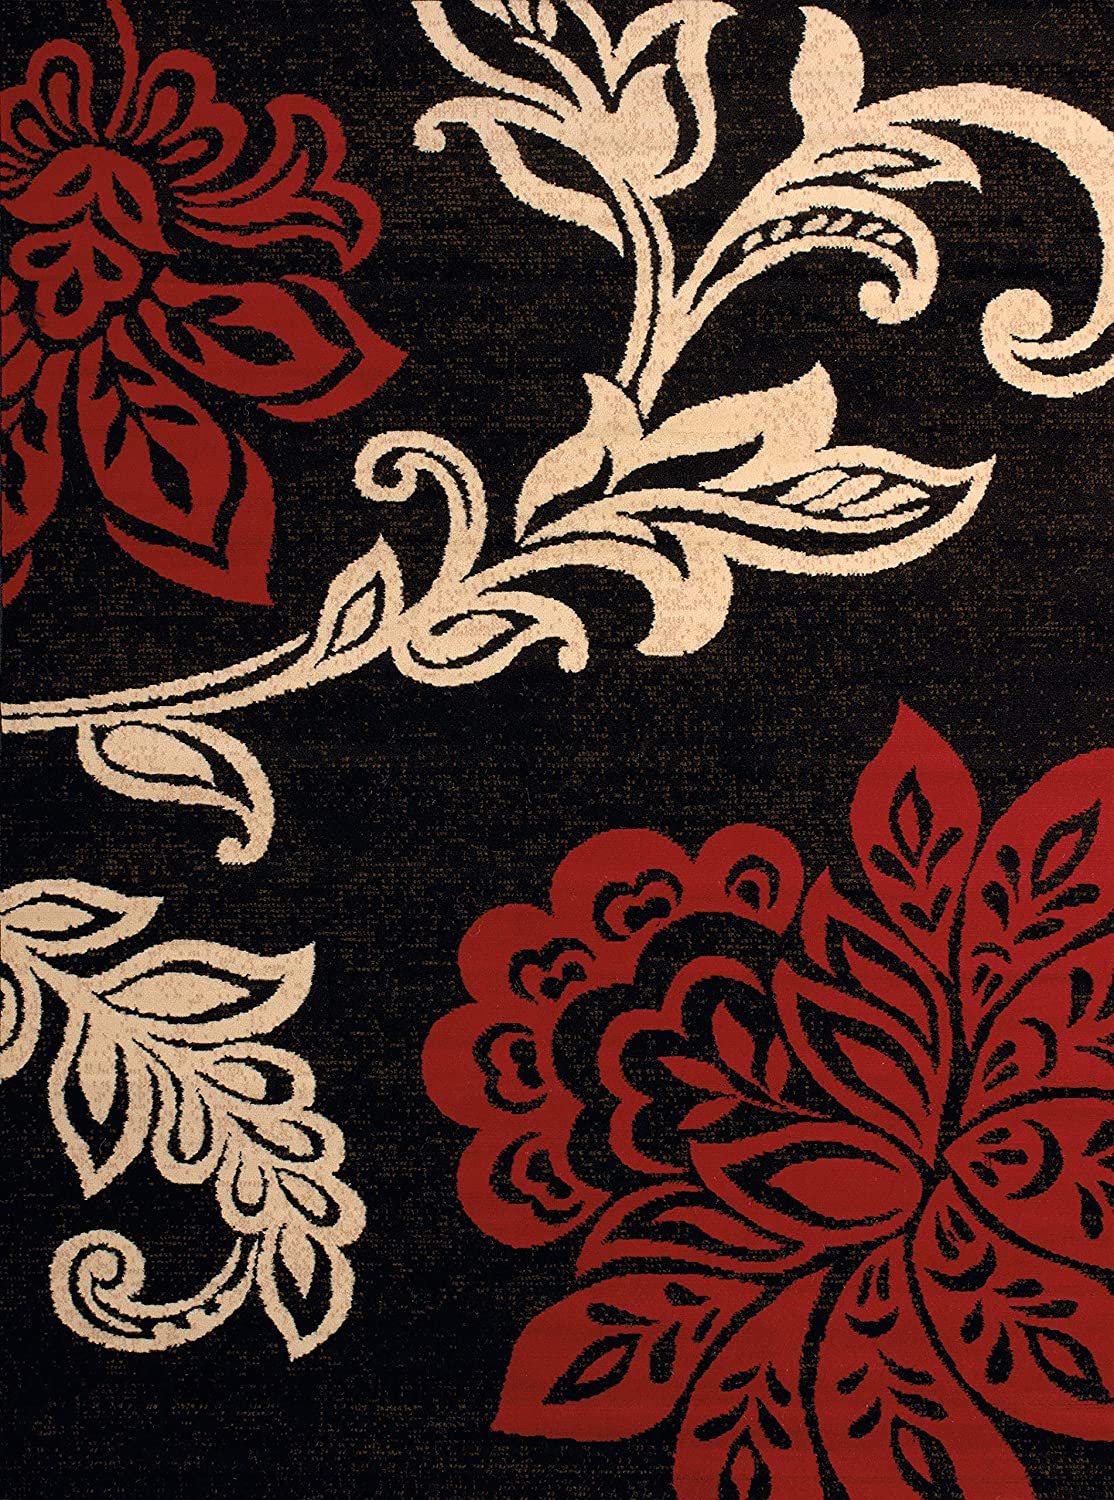 United Weavers of America Dallas Trousseau Rug - 5ft. 3in. x 7ft. 2in, Red, Polypropylene Rug with Floral Pattern, Jute Backing. Modern Indoor Rugs